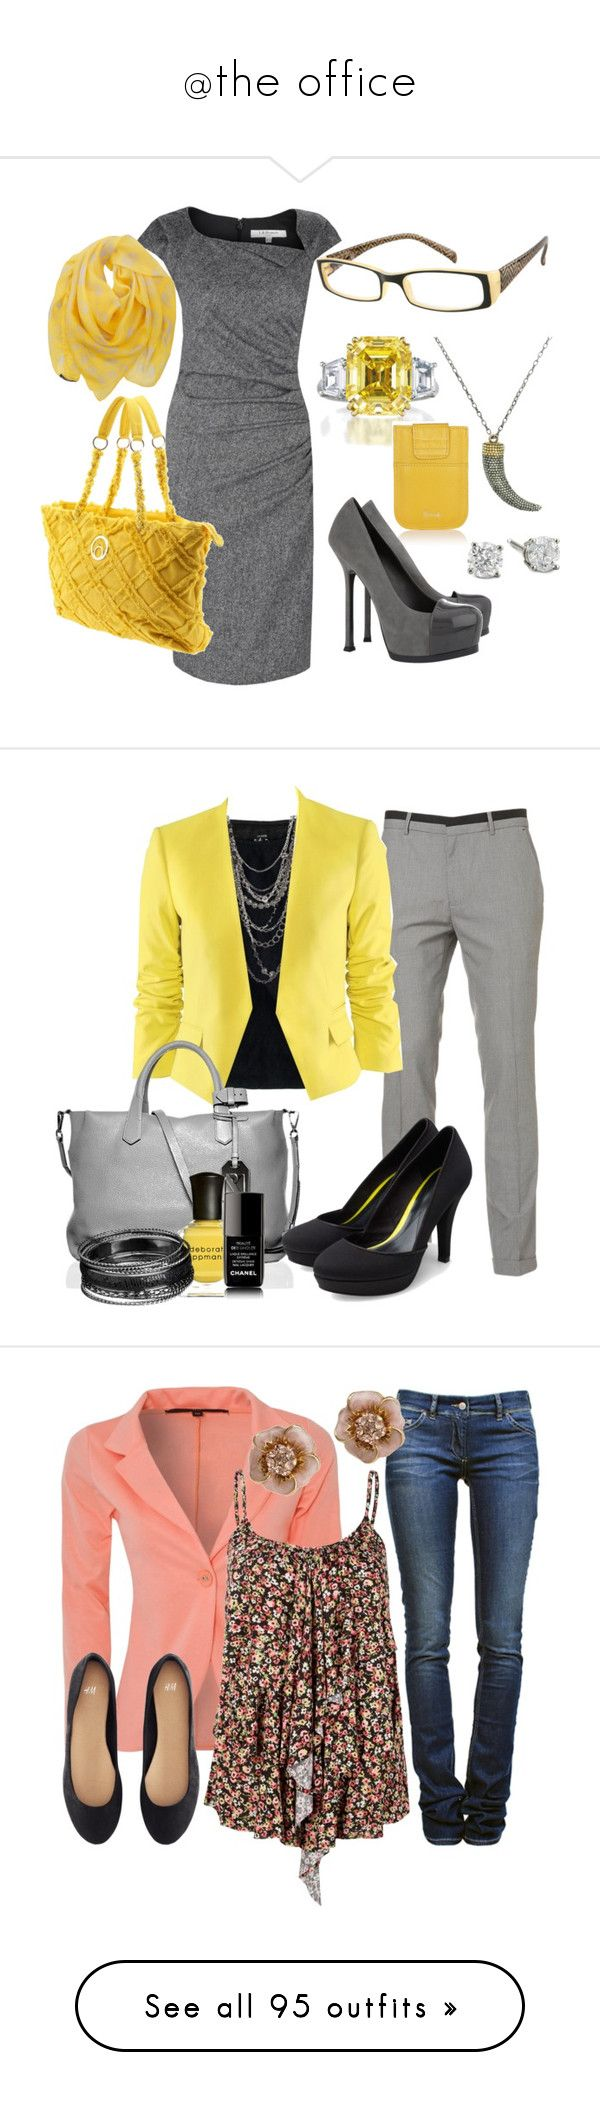 """""""@the office"""" by lluikart ❤ liked on Polyvore featuring L.K.Bennett, Big Buddha, Harry Winston, Harrods, Yves Saint Laurent, Alexander McQueen, tote, 14k, patent shoes and yellow"""